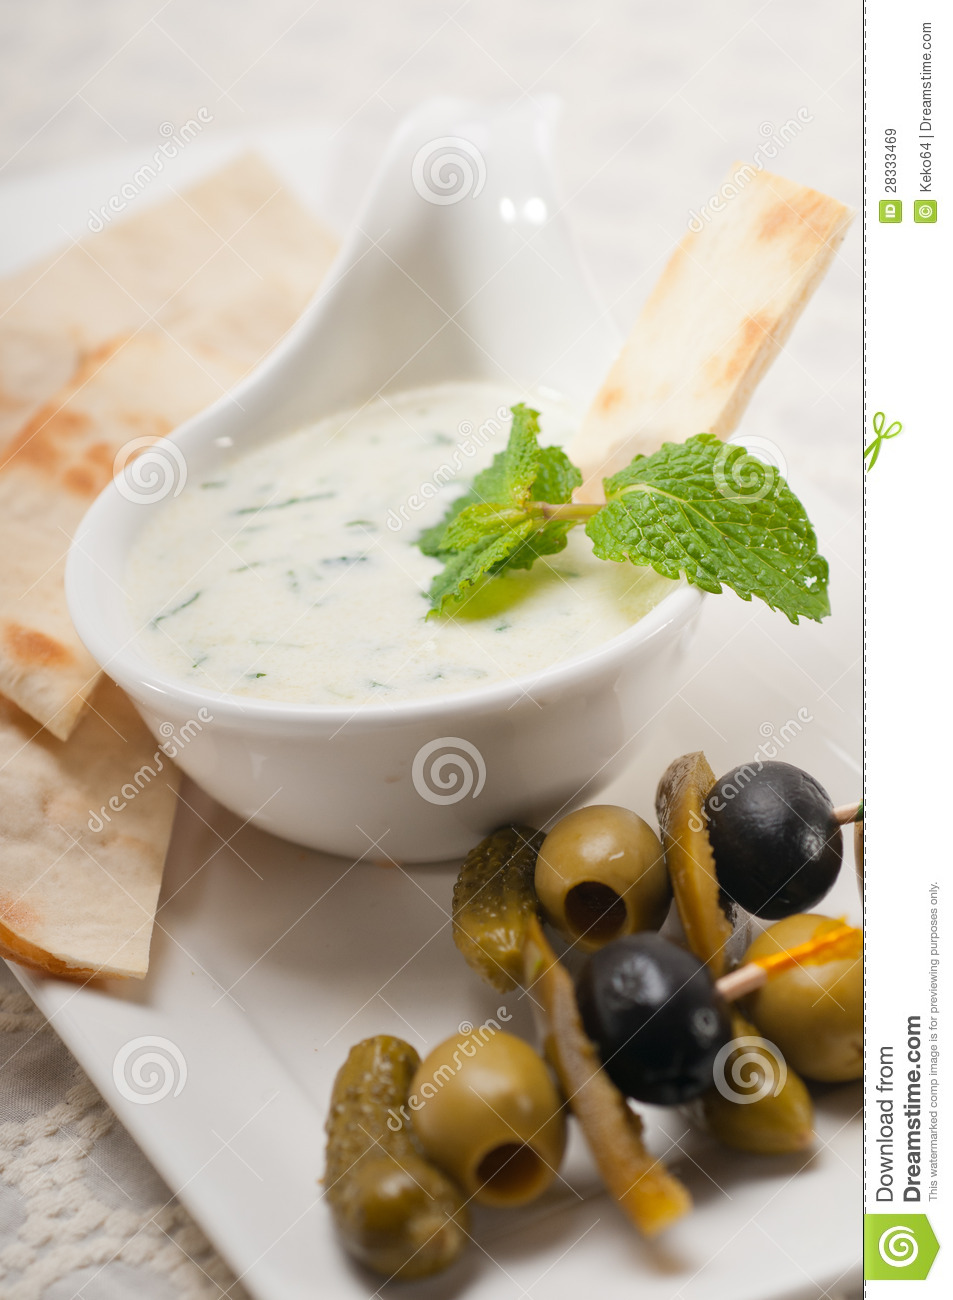 how to make tzatziki dip with sour cream